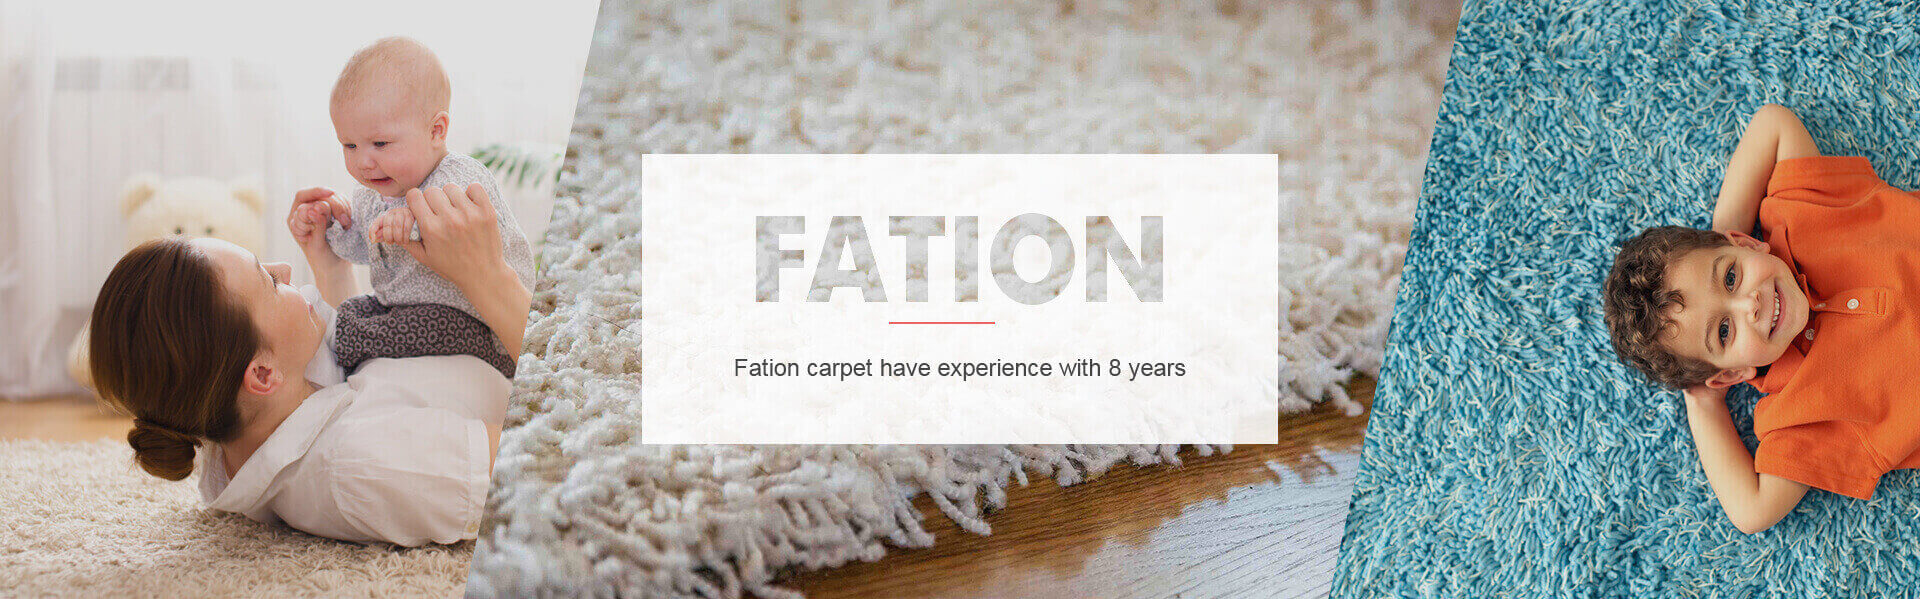 fation rug suppliers